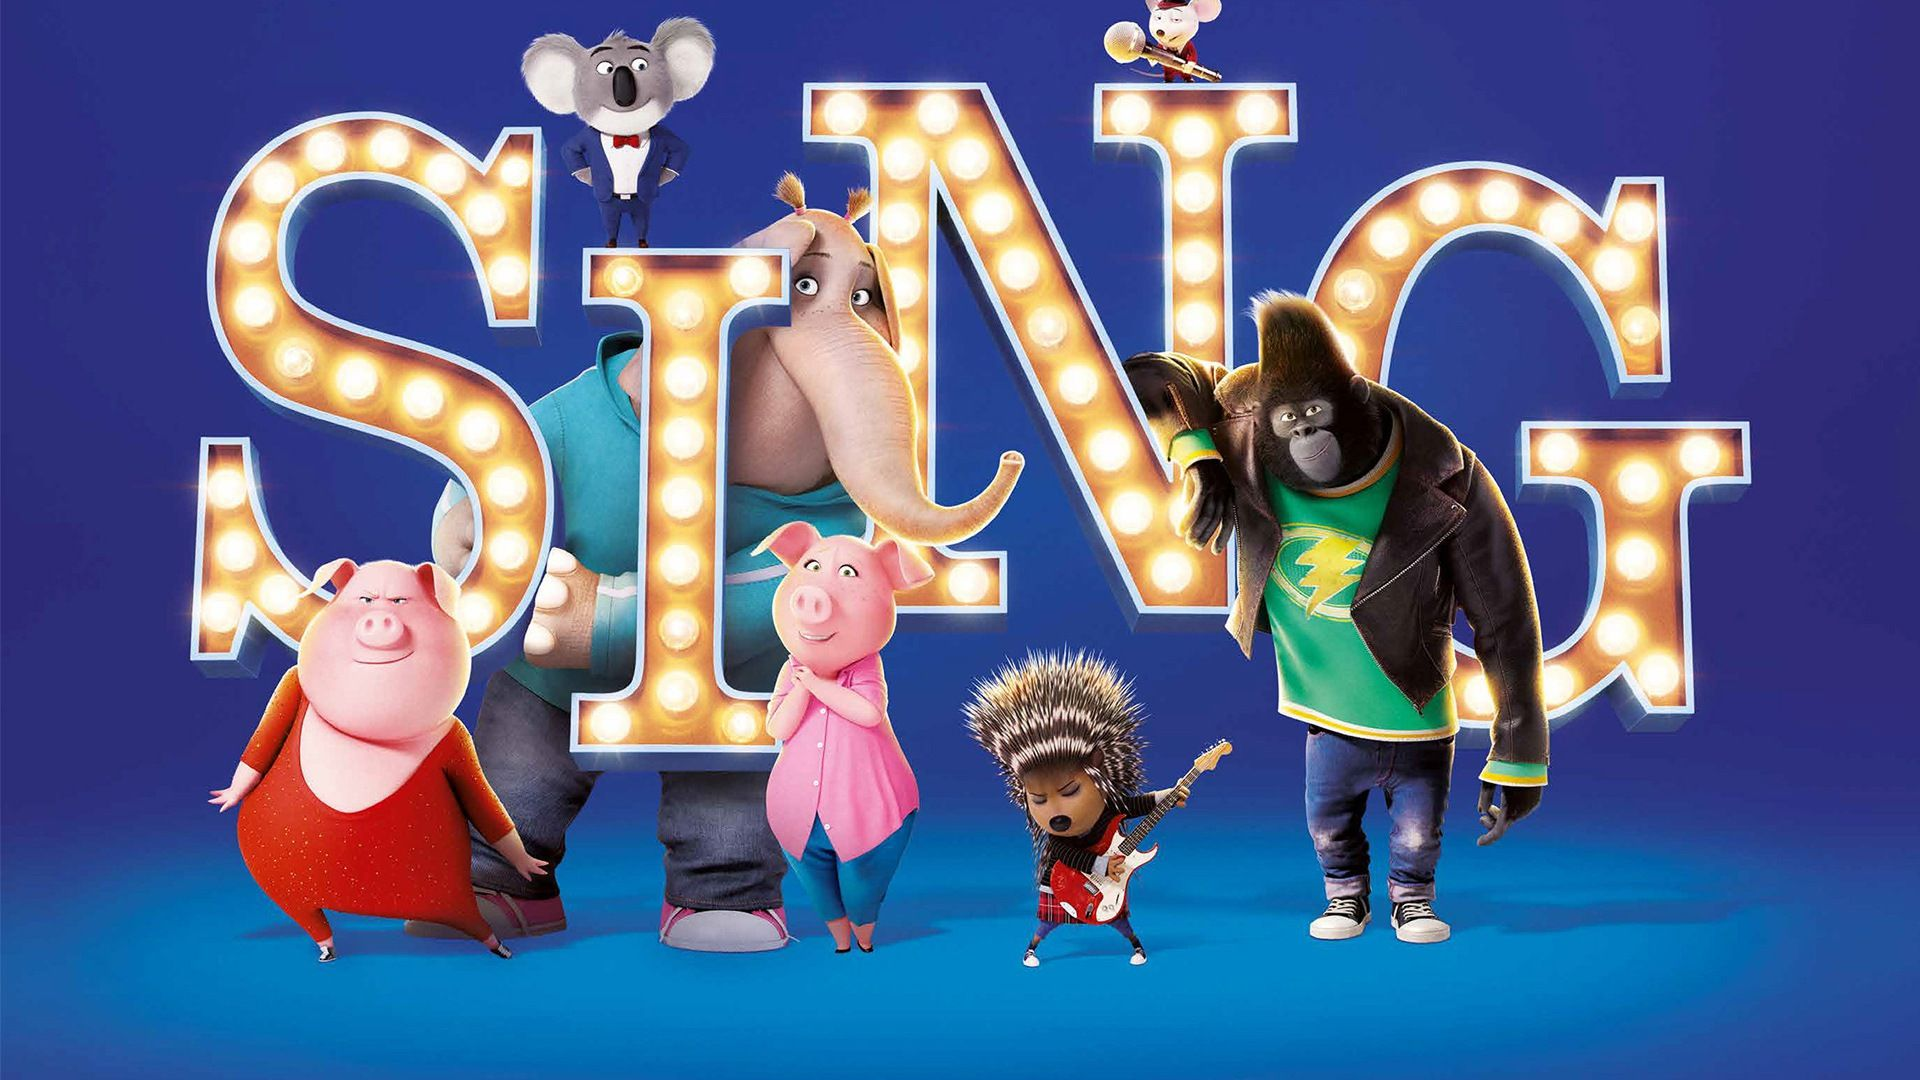 http://anoncraft.com/wallpaper/sing-2016-movie-animation ...